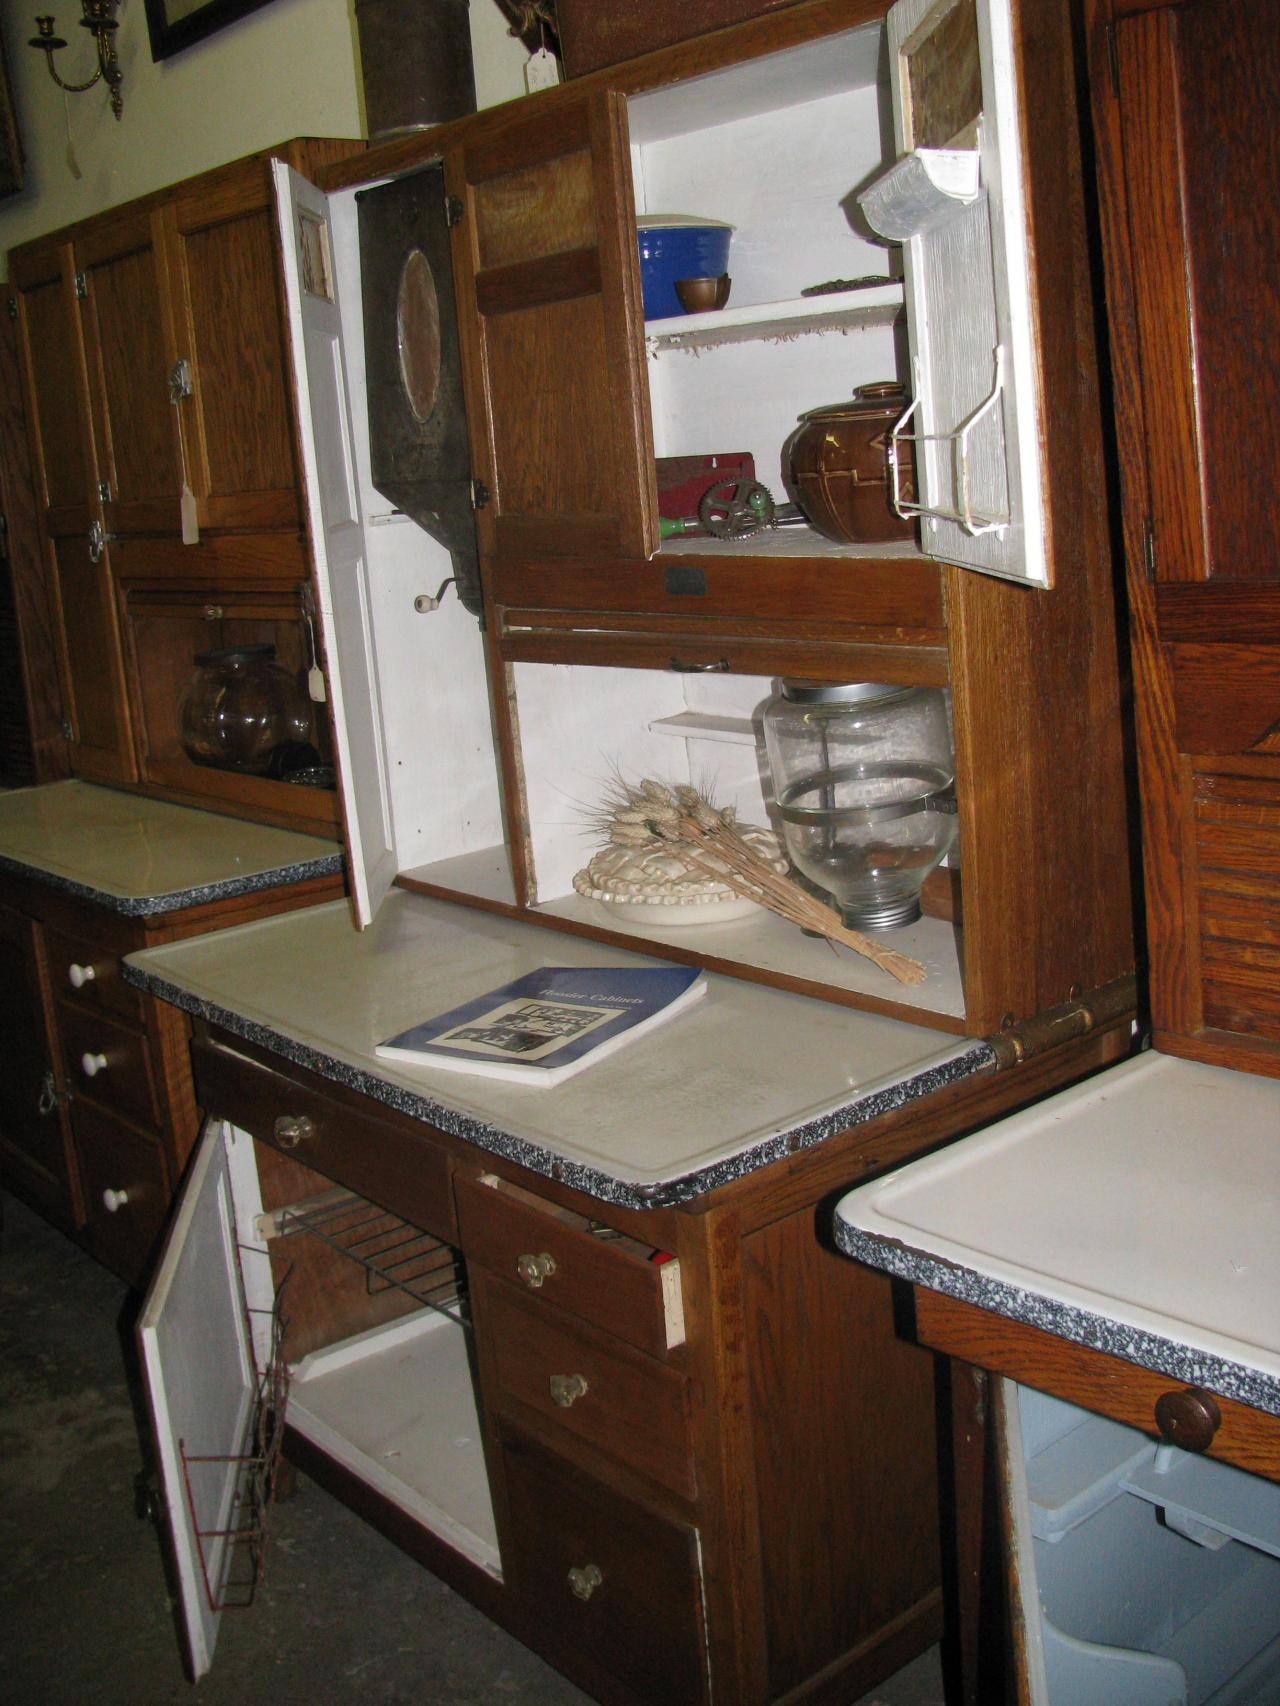 Hoosier Kitchen Cabinet Zs Antiques Restorations Hoosier Bakers Cabinets Including